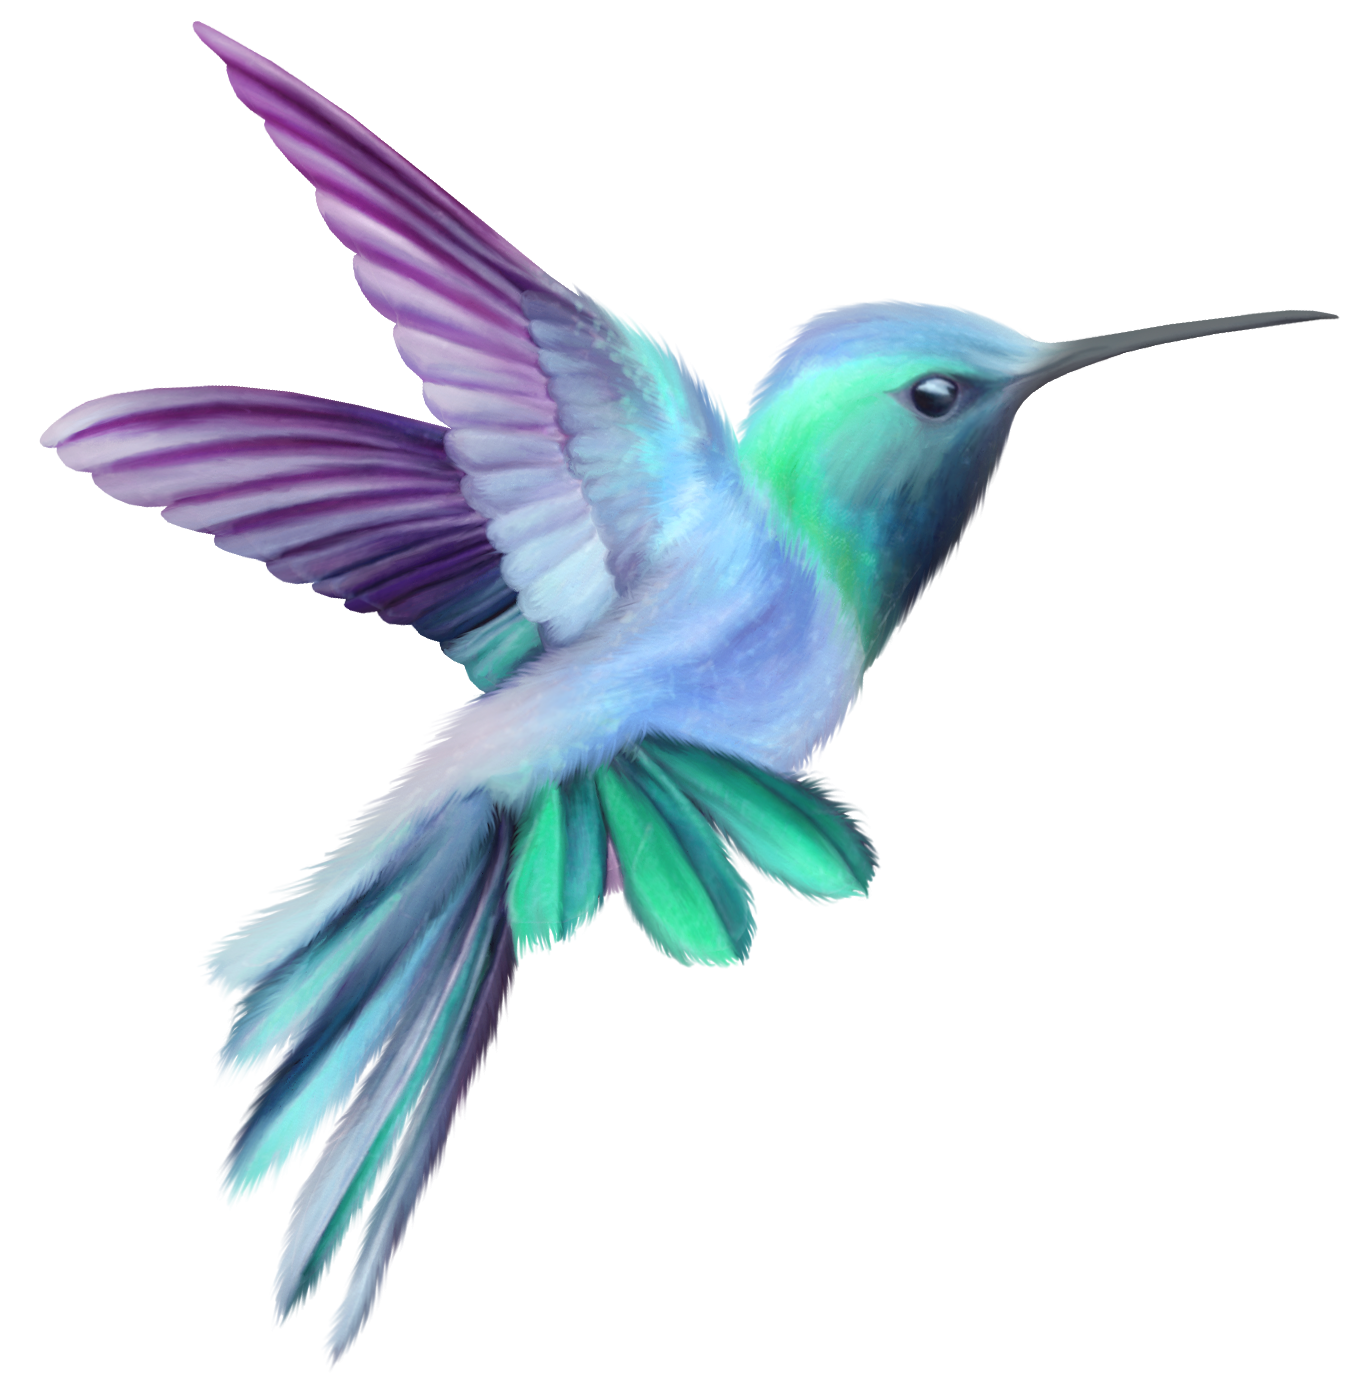 black and white library Hummingbird clipart. Transparent clip art image.